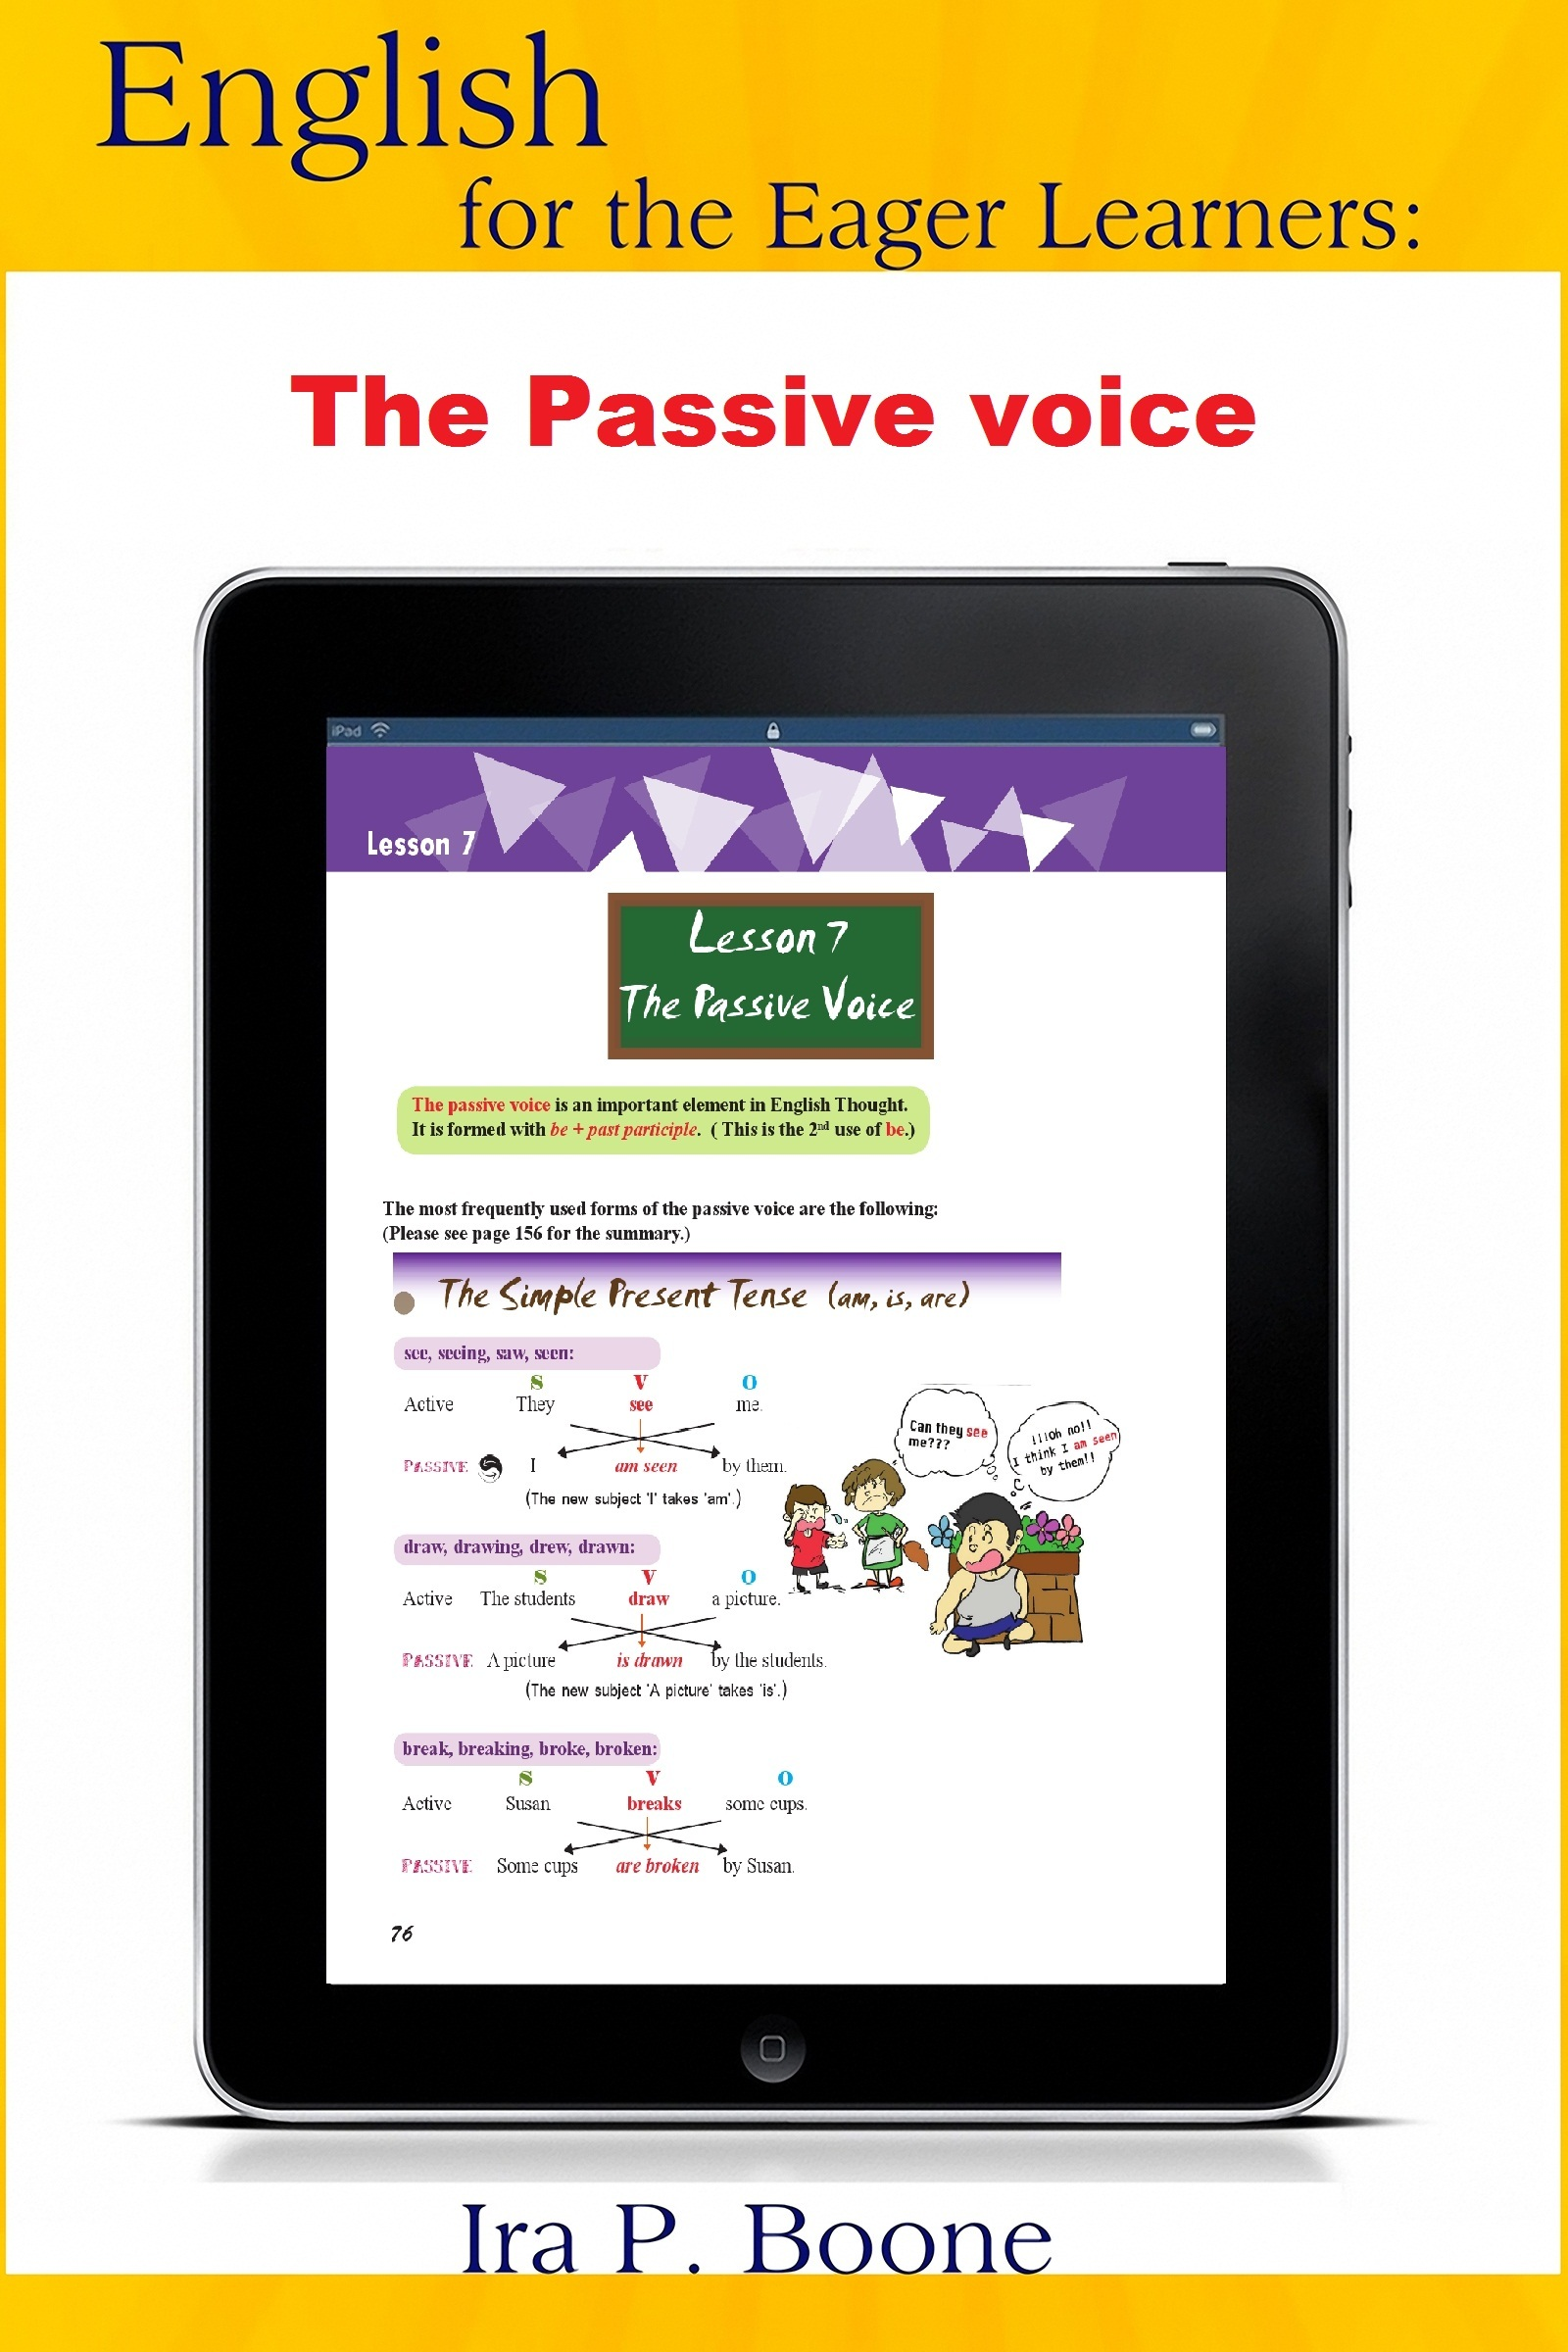 English for the Eager Learners: The Passive voice